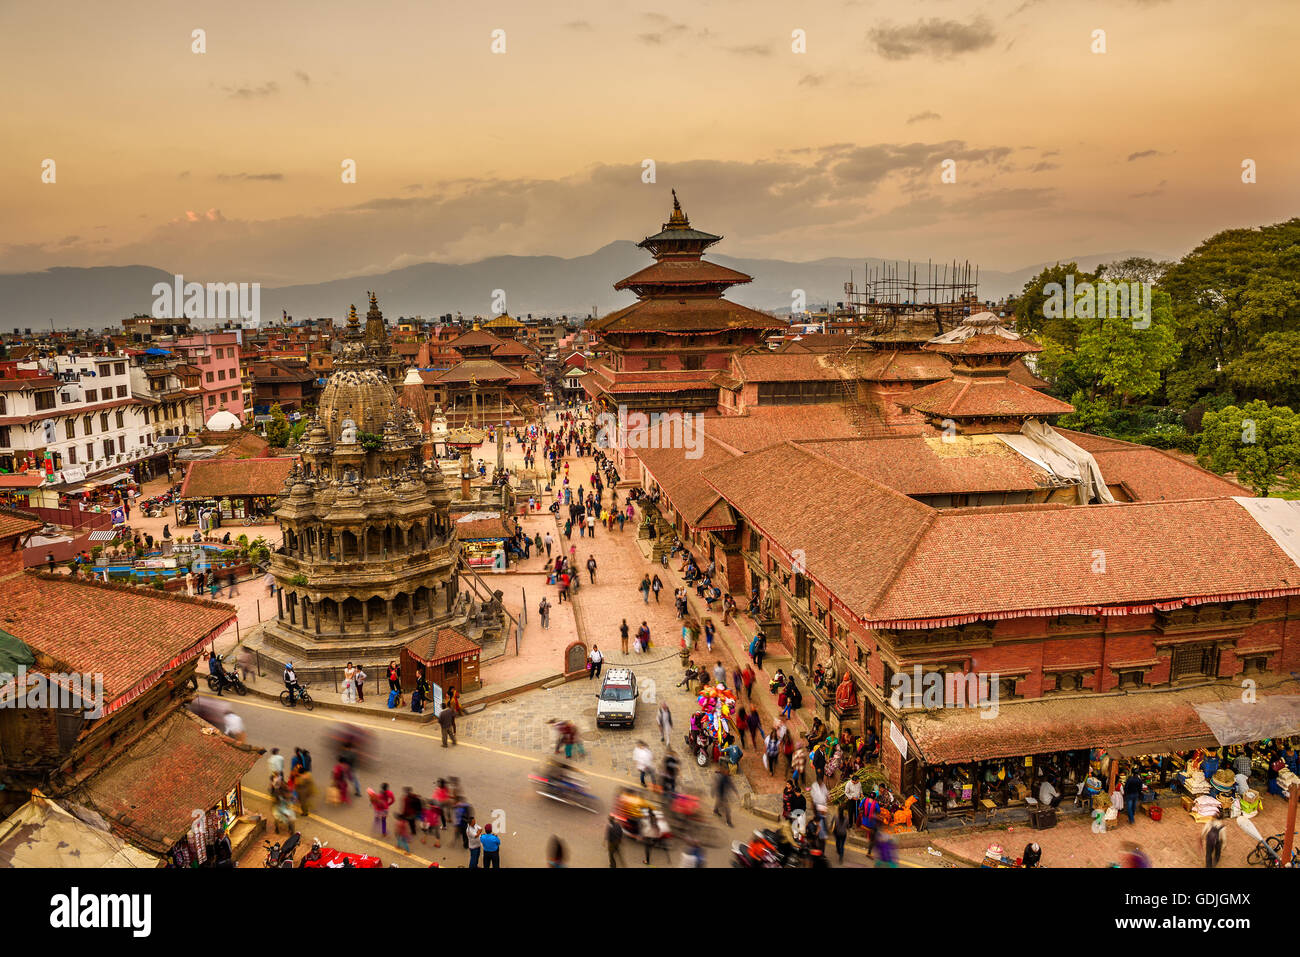 Sunset over  Patan Durbar Square in Nepal - Stock Image